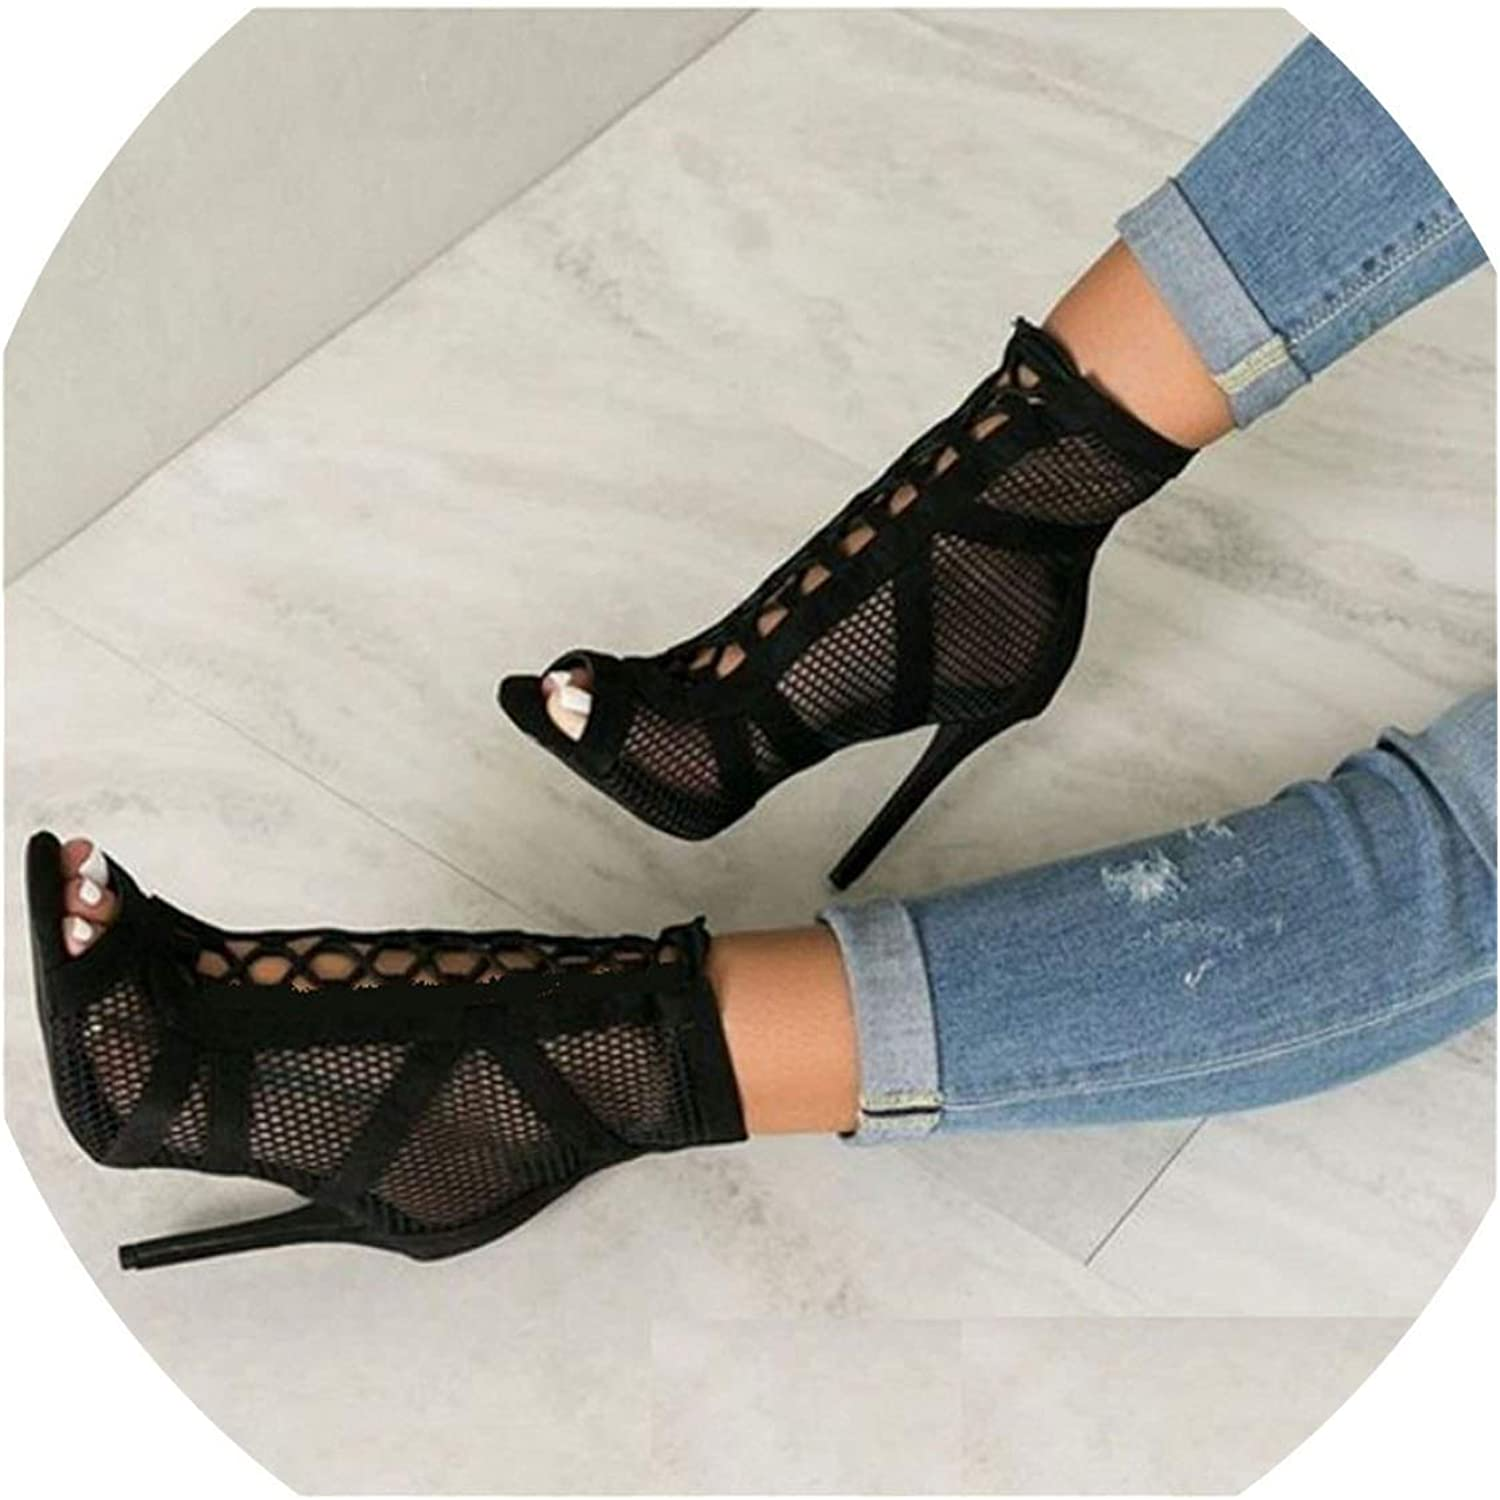 Fortune-god Black Net Suede Fabric Cross Strap Sexy High Heel shoes Pumps Lace-Up Peep Toe Sandals